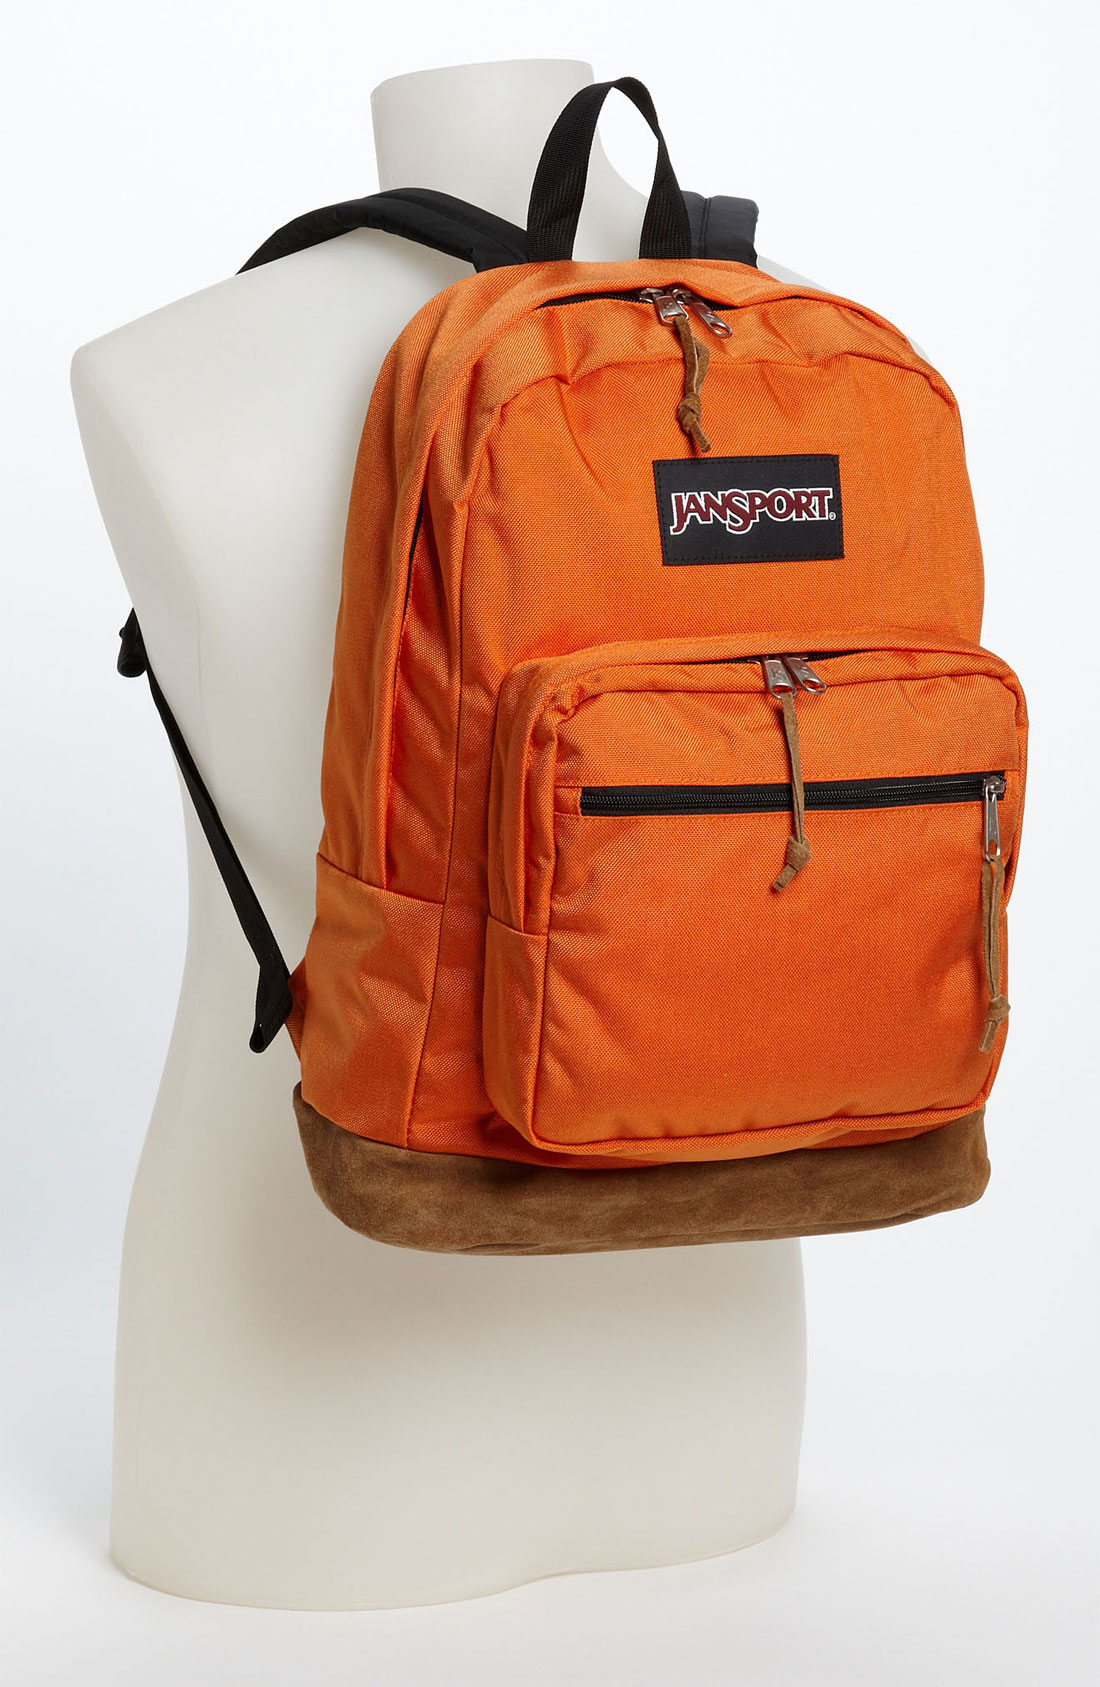 Lyst - Jansport Right Backpack in Orange for Men